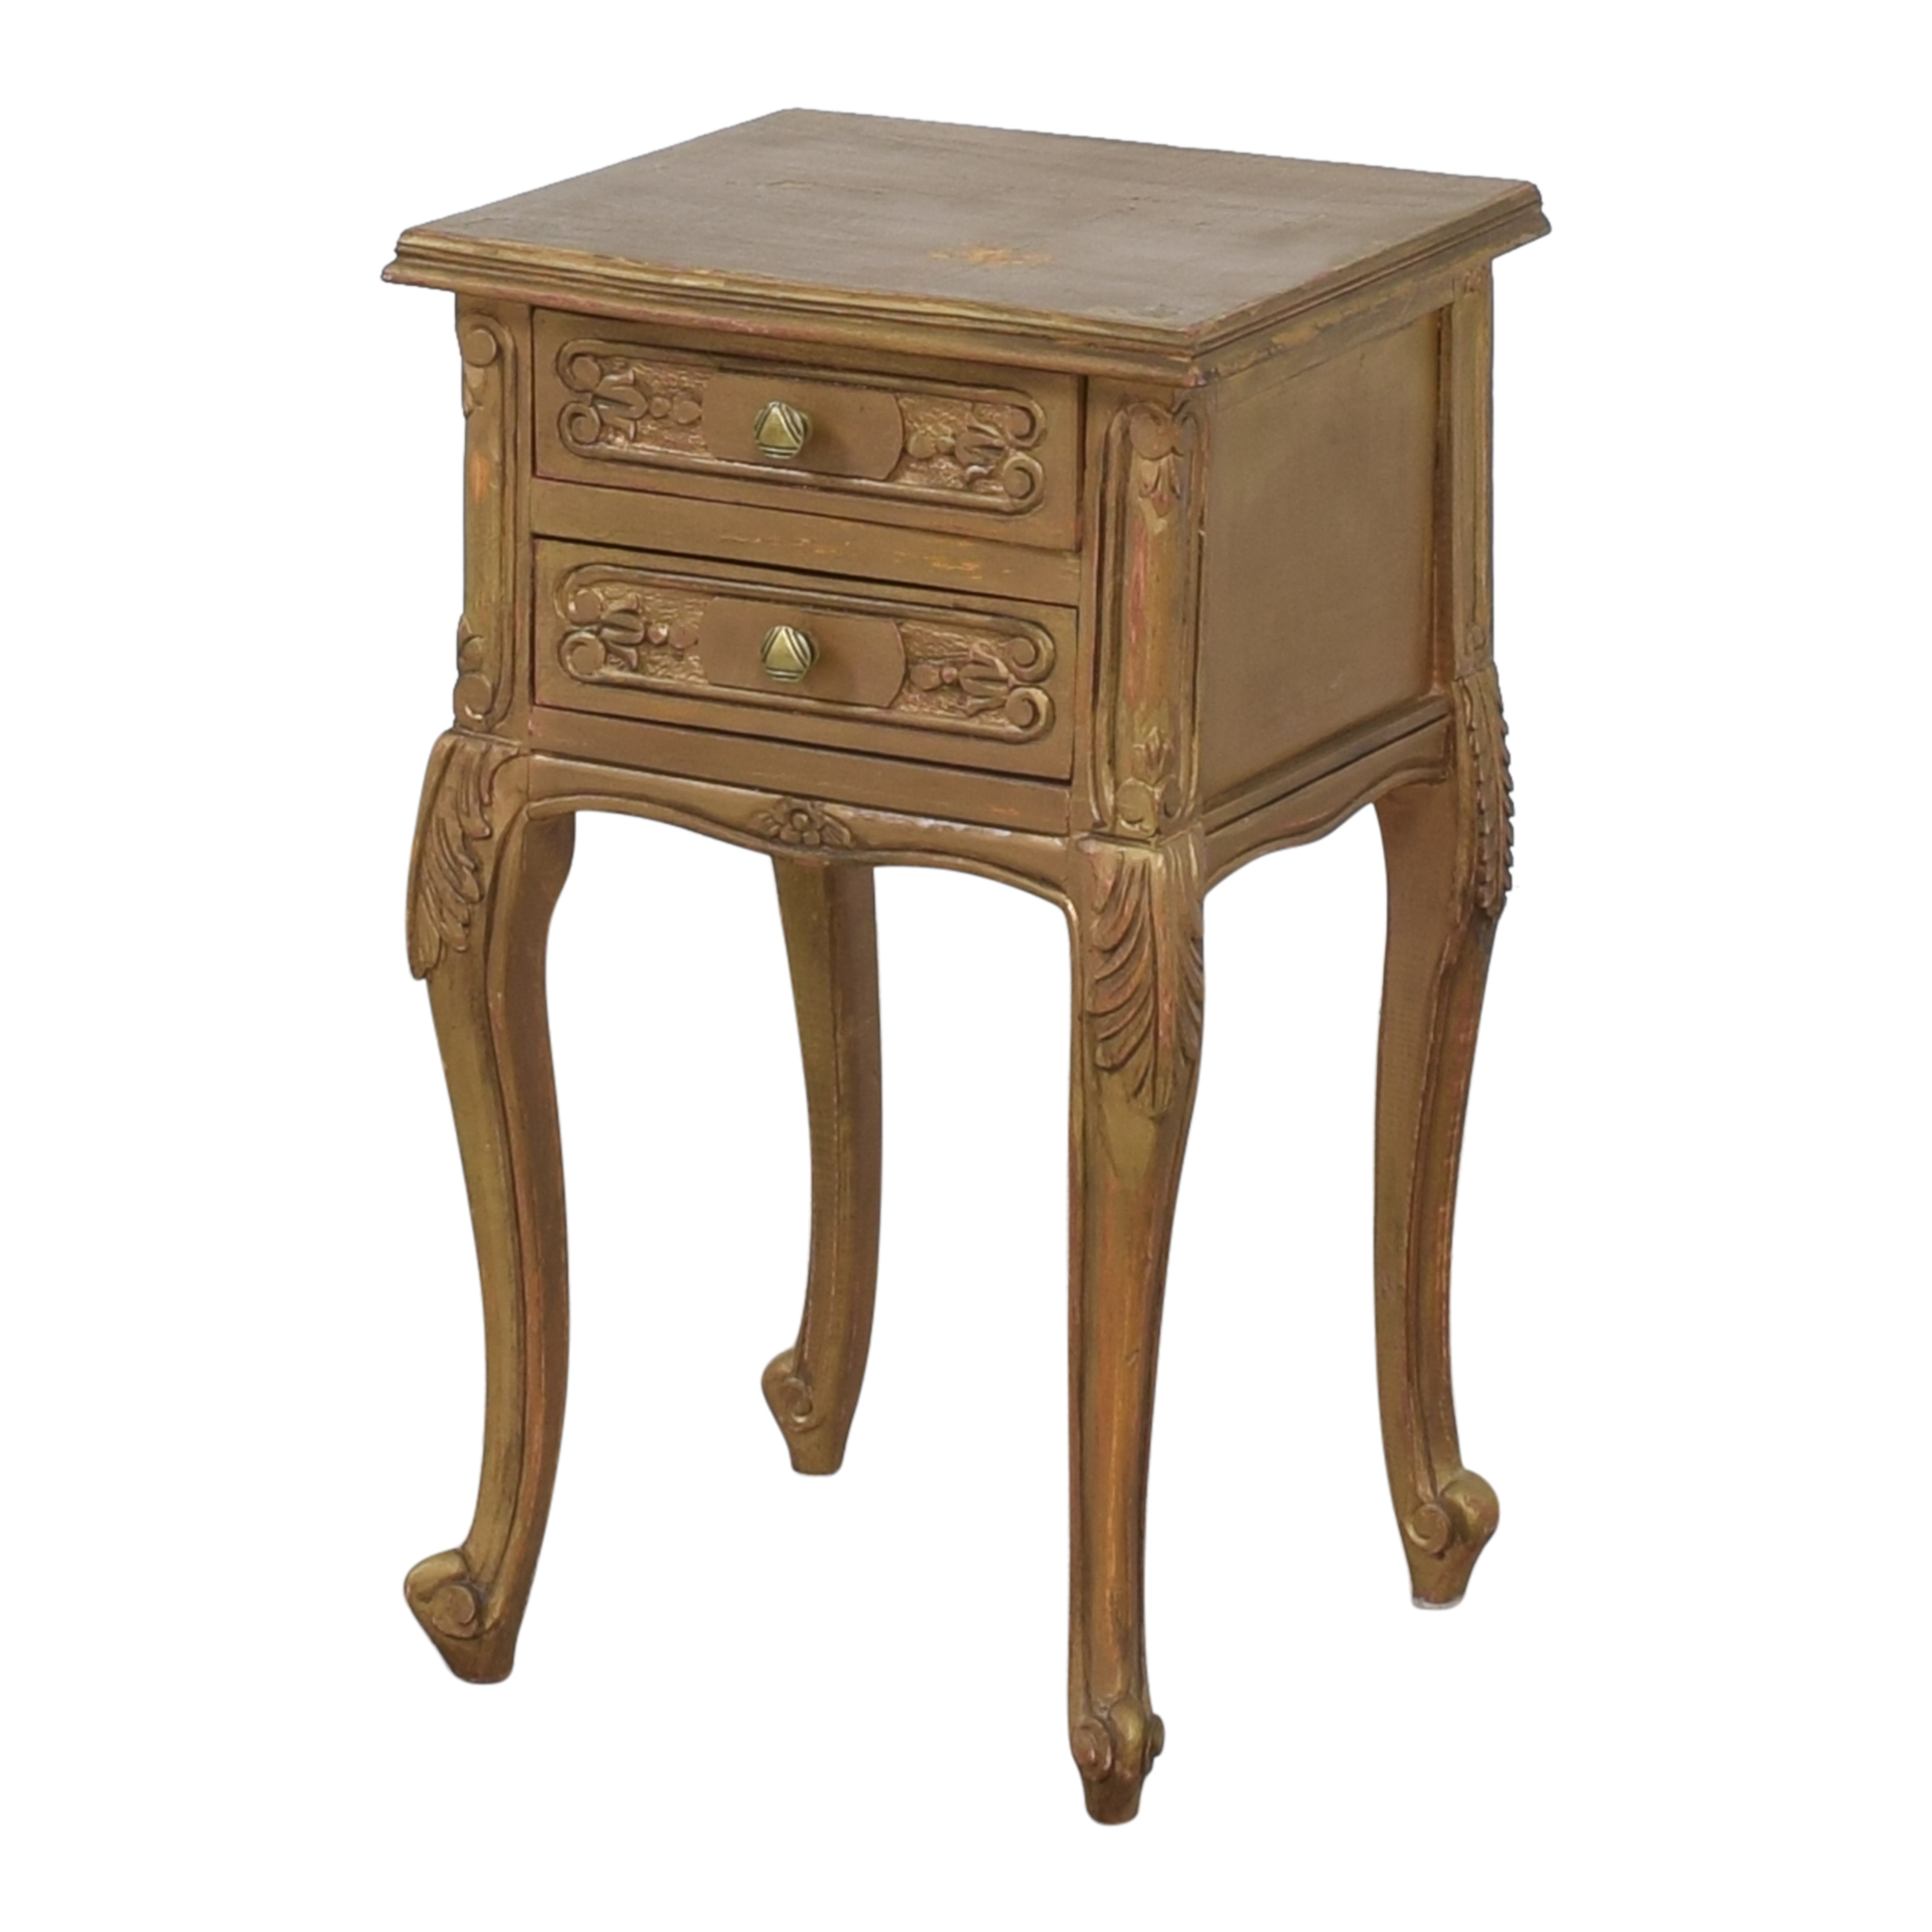 Restoration Hardware Restoration Hardware Two Drawer Side Table second hand